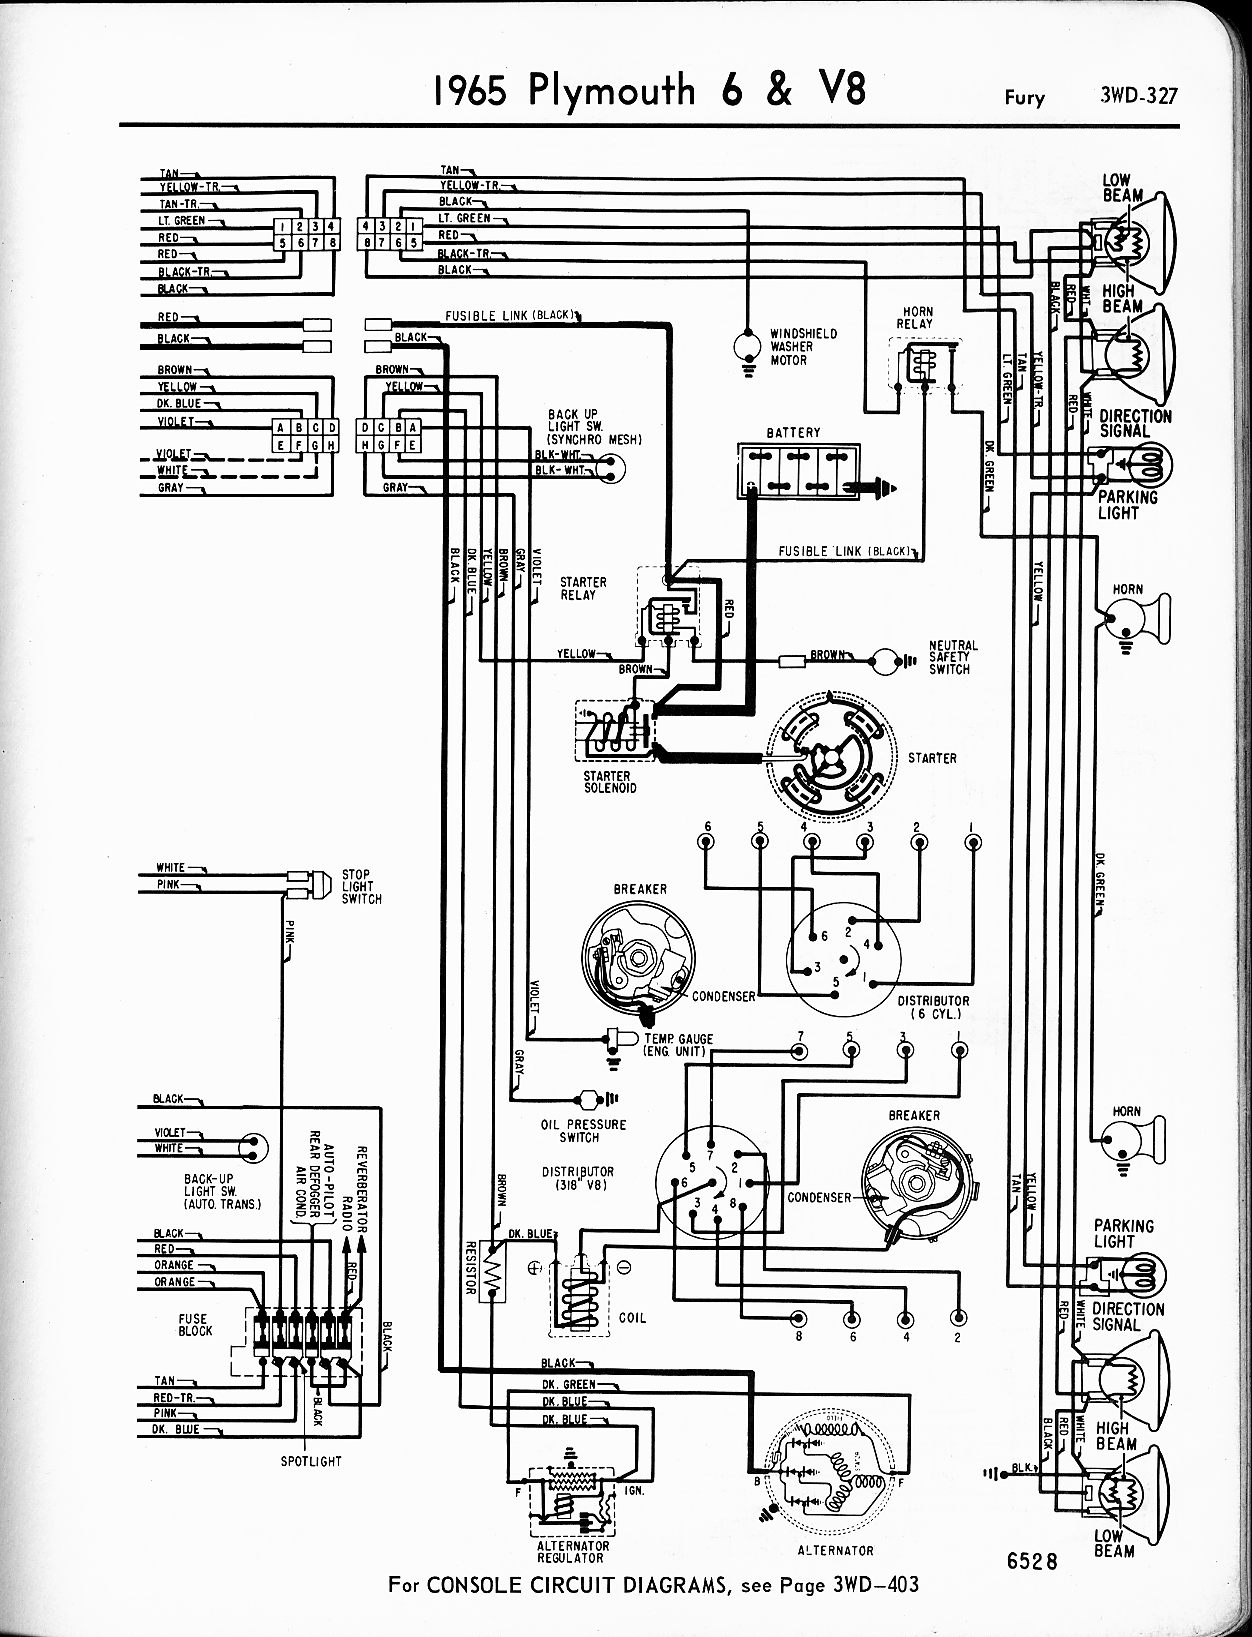 Wiring Diagram 68 Imperial - Wiring Diagram Data on free auto wiring schematic, free car repair manuals, free vehicle diagrams, free chilton diagrams, free car parts, electrical diagrams, free diagram templates, free schematic diagram, free auto diagrams, free home, free honda wiring diagram, free car schematics, free electronic schematics, free engine rebuilding diagrams, free car seats, free car diagnostic, free car tools, free car maintenance, free car engine diagrams, free toyota repair diagrams,